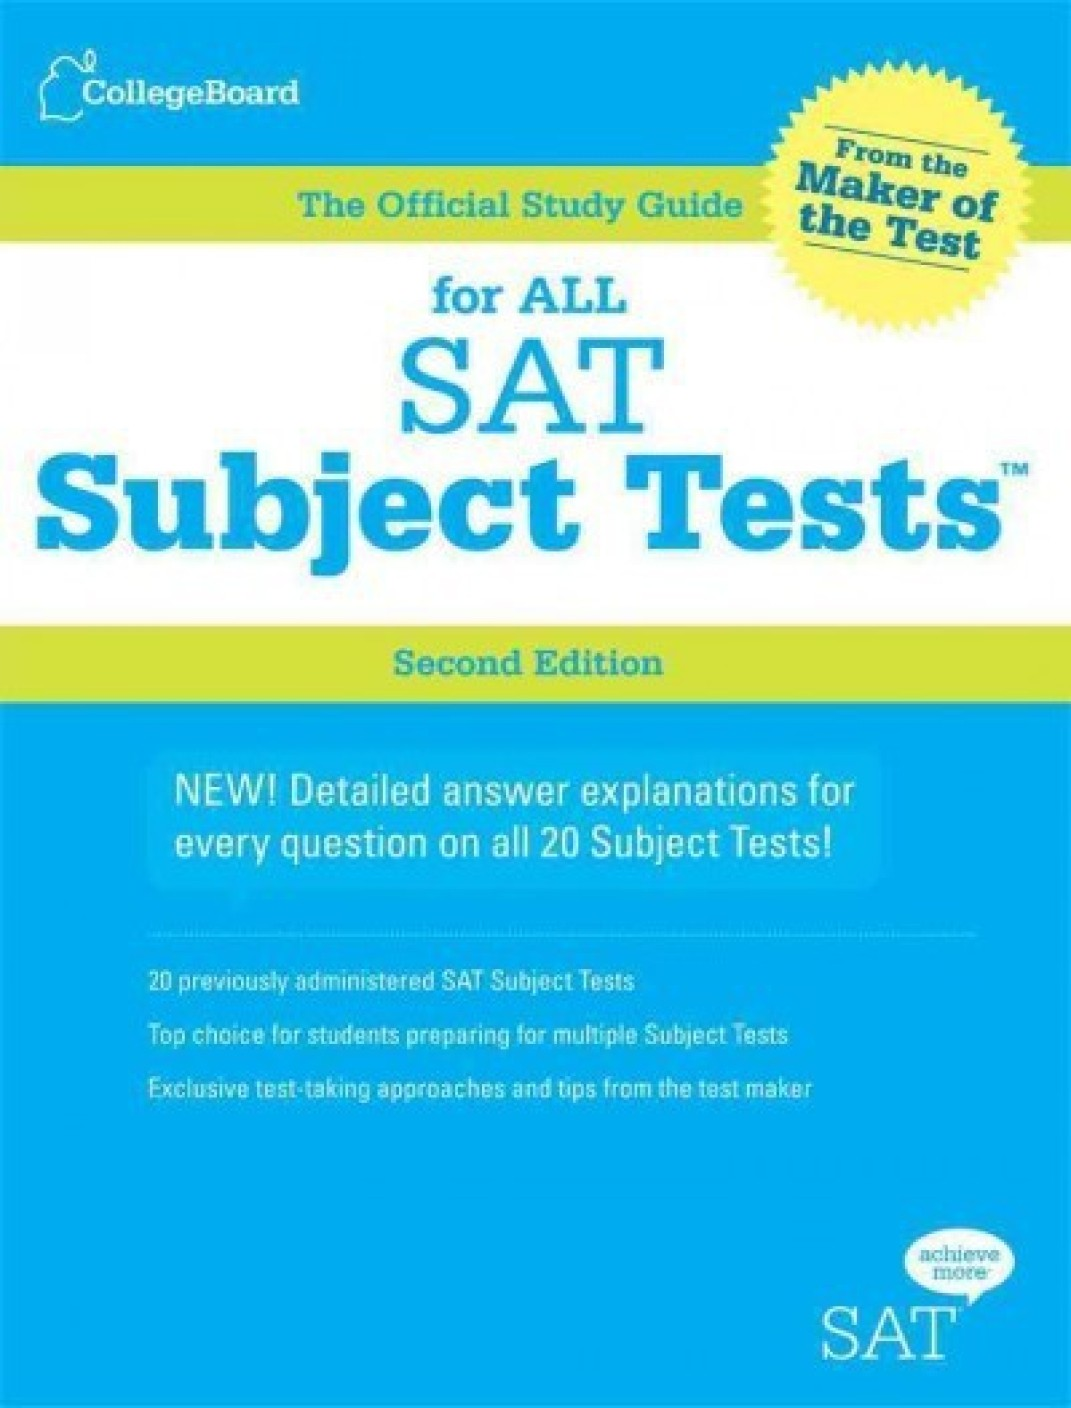 Best Sellers in SAT Subject Test Guides - amazon.com